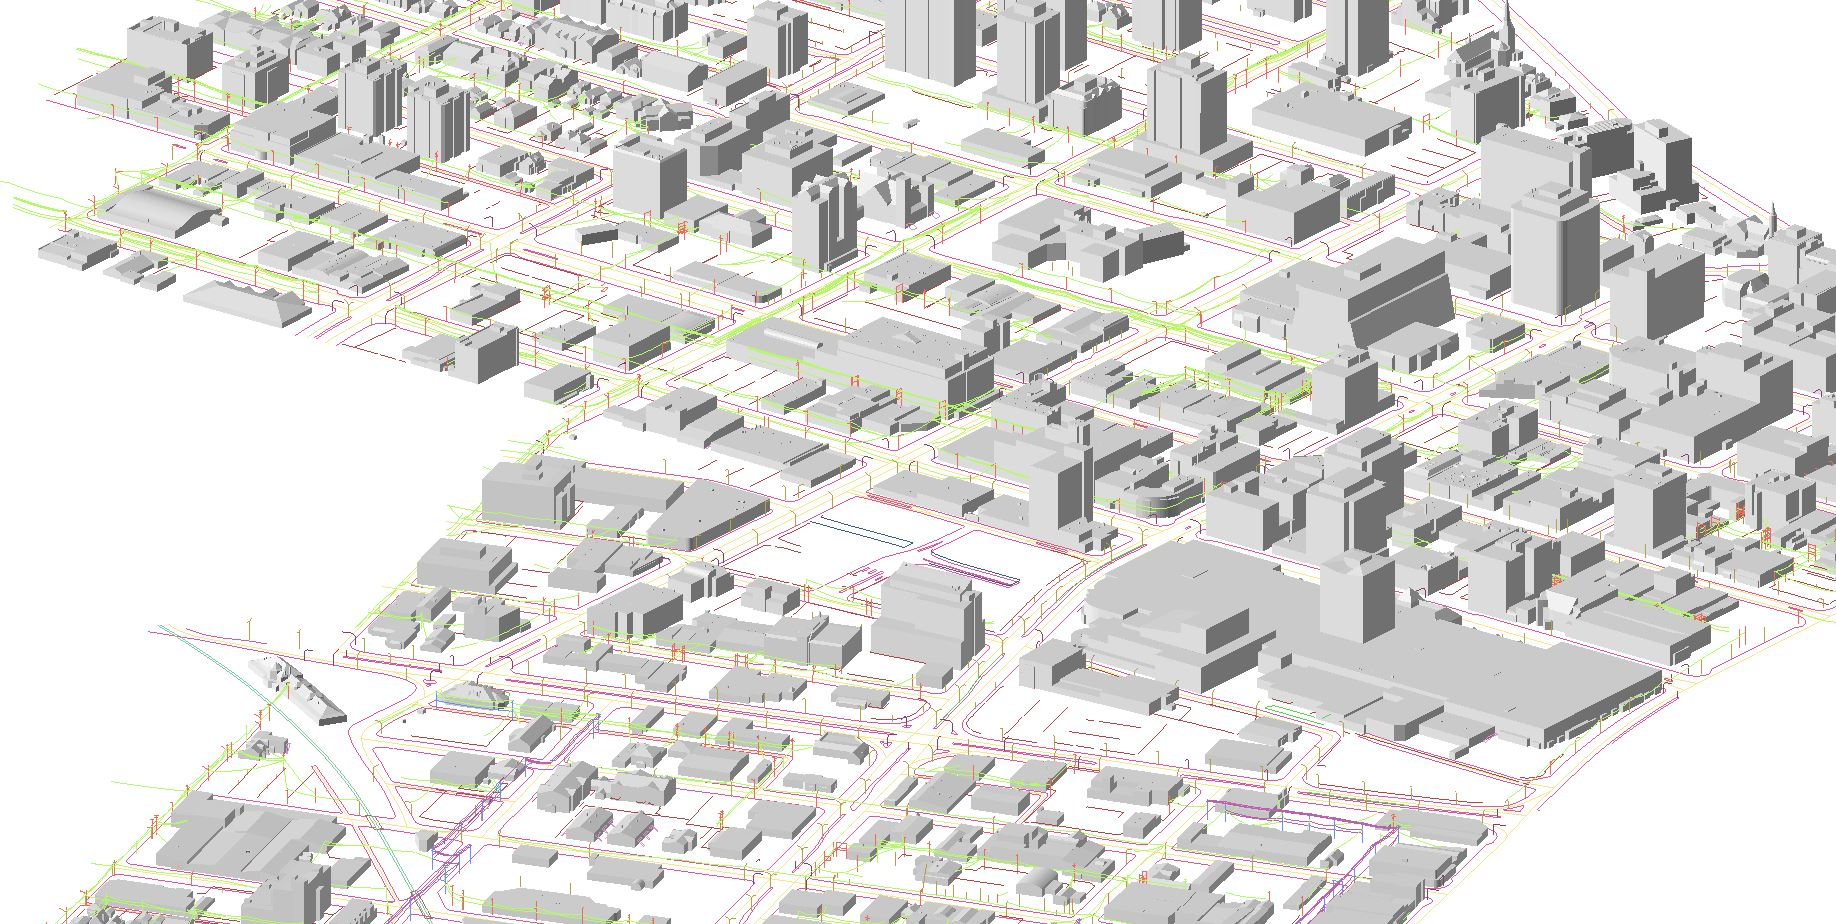 Transit planning from models